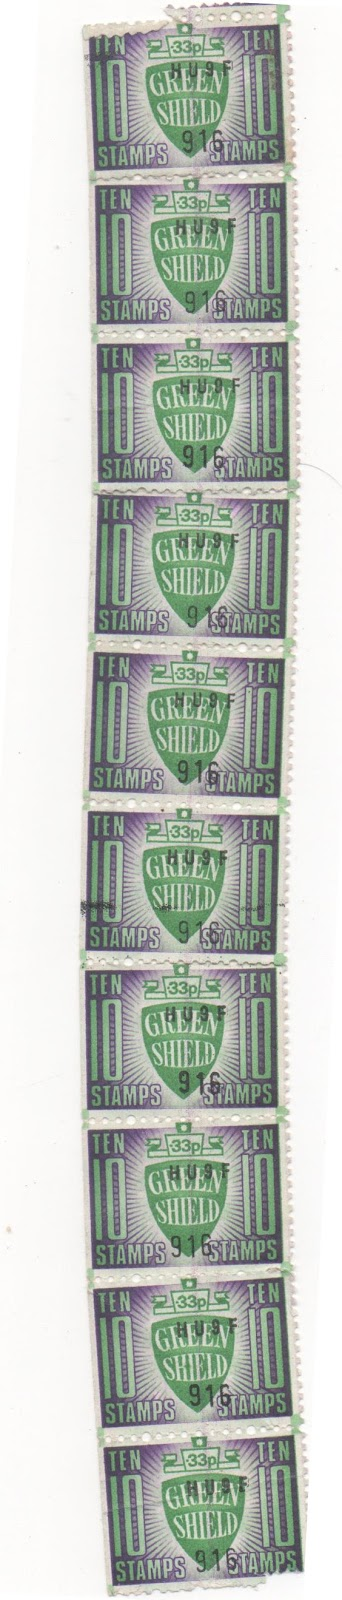 Green Shield ten Stamps x10